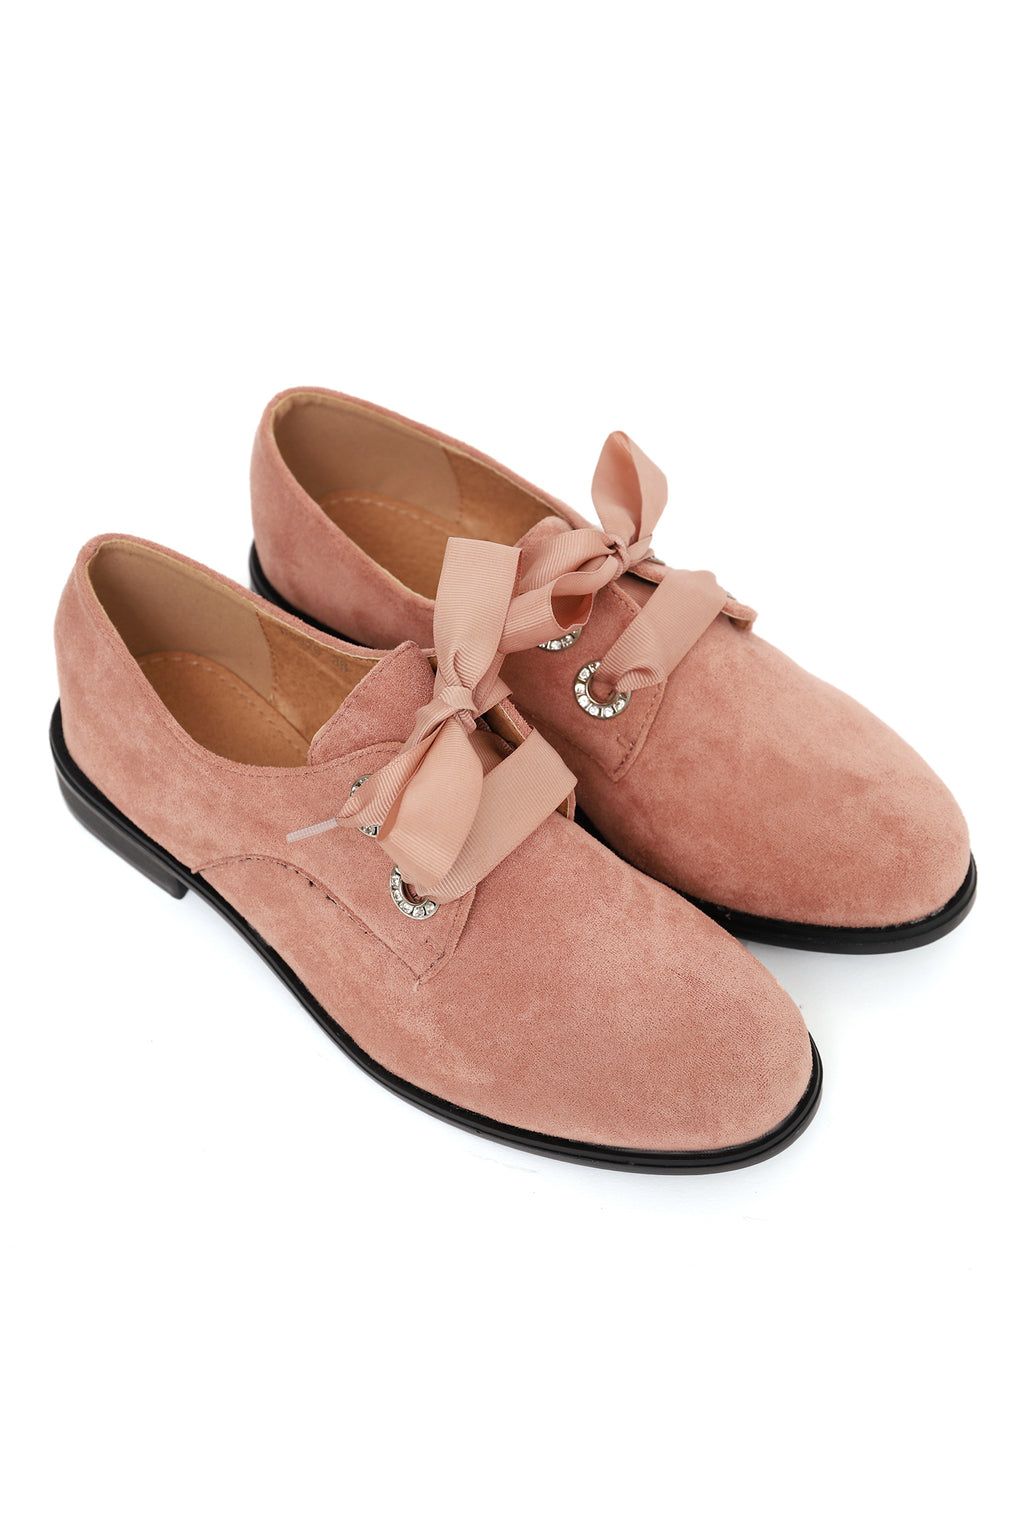 LACE UP FLATS -PINK